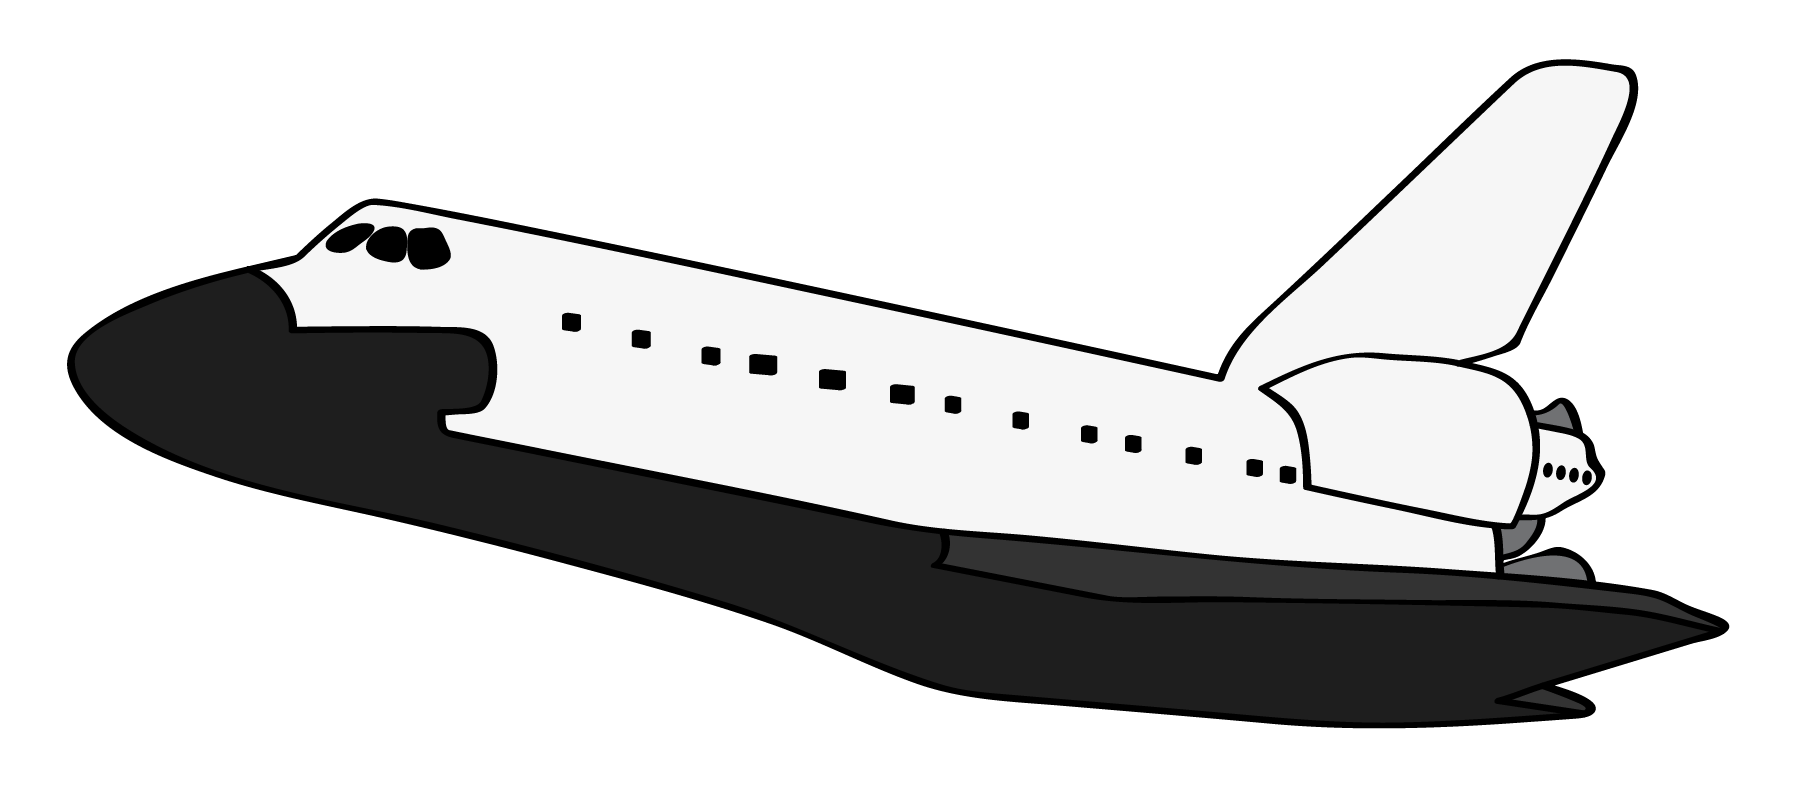 Spaceship clipart aerospace engineering. Space shuttle letters format